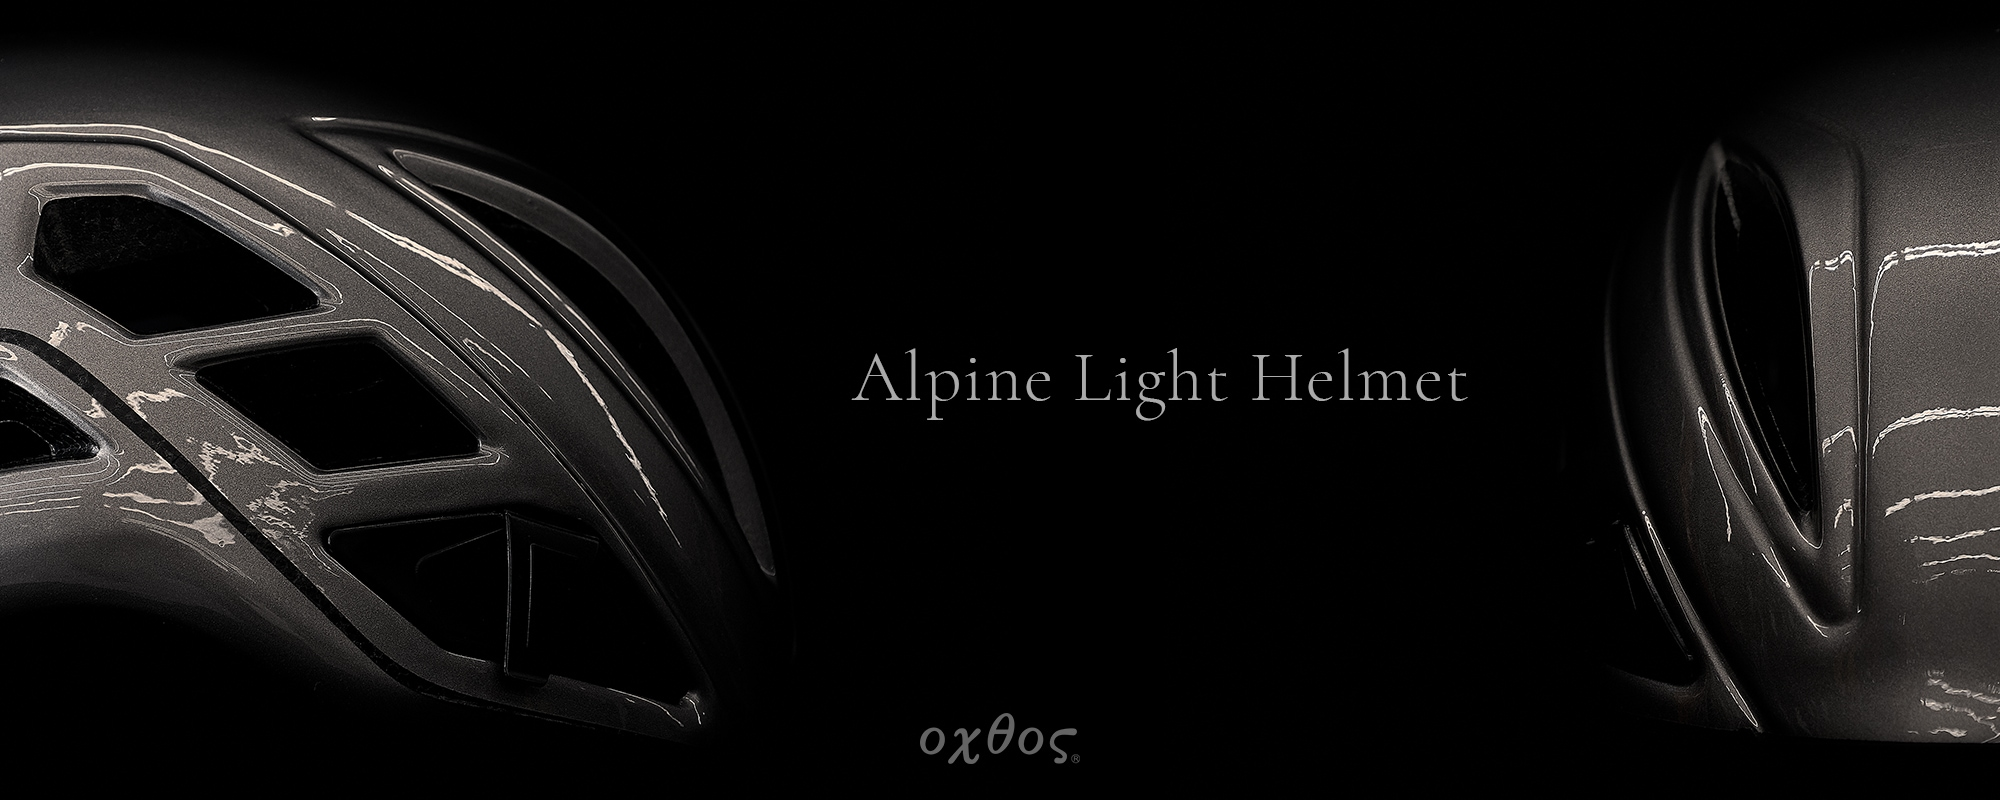 ALPINE LIGHT HELMET oxtos